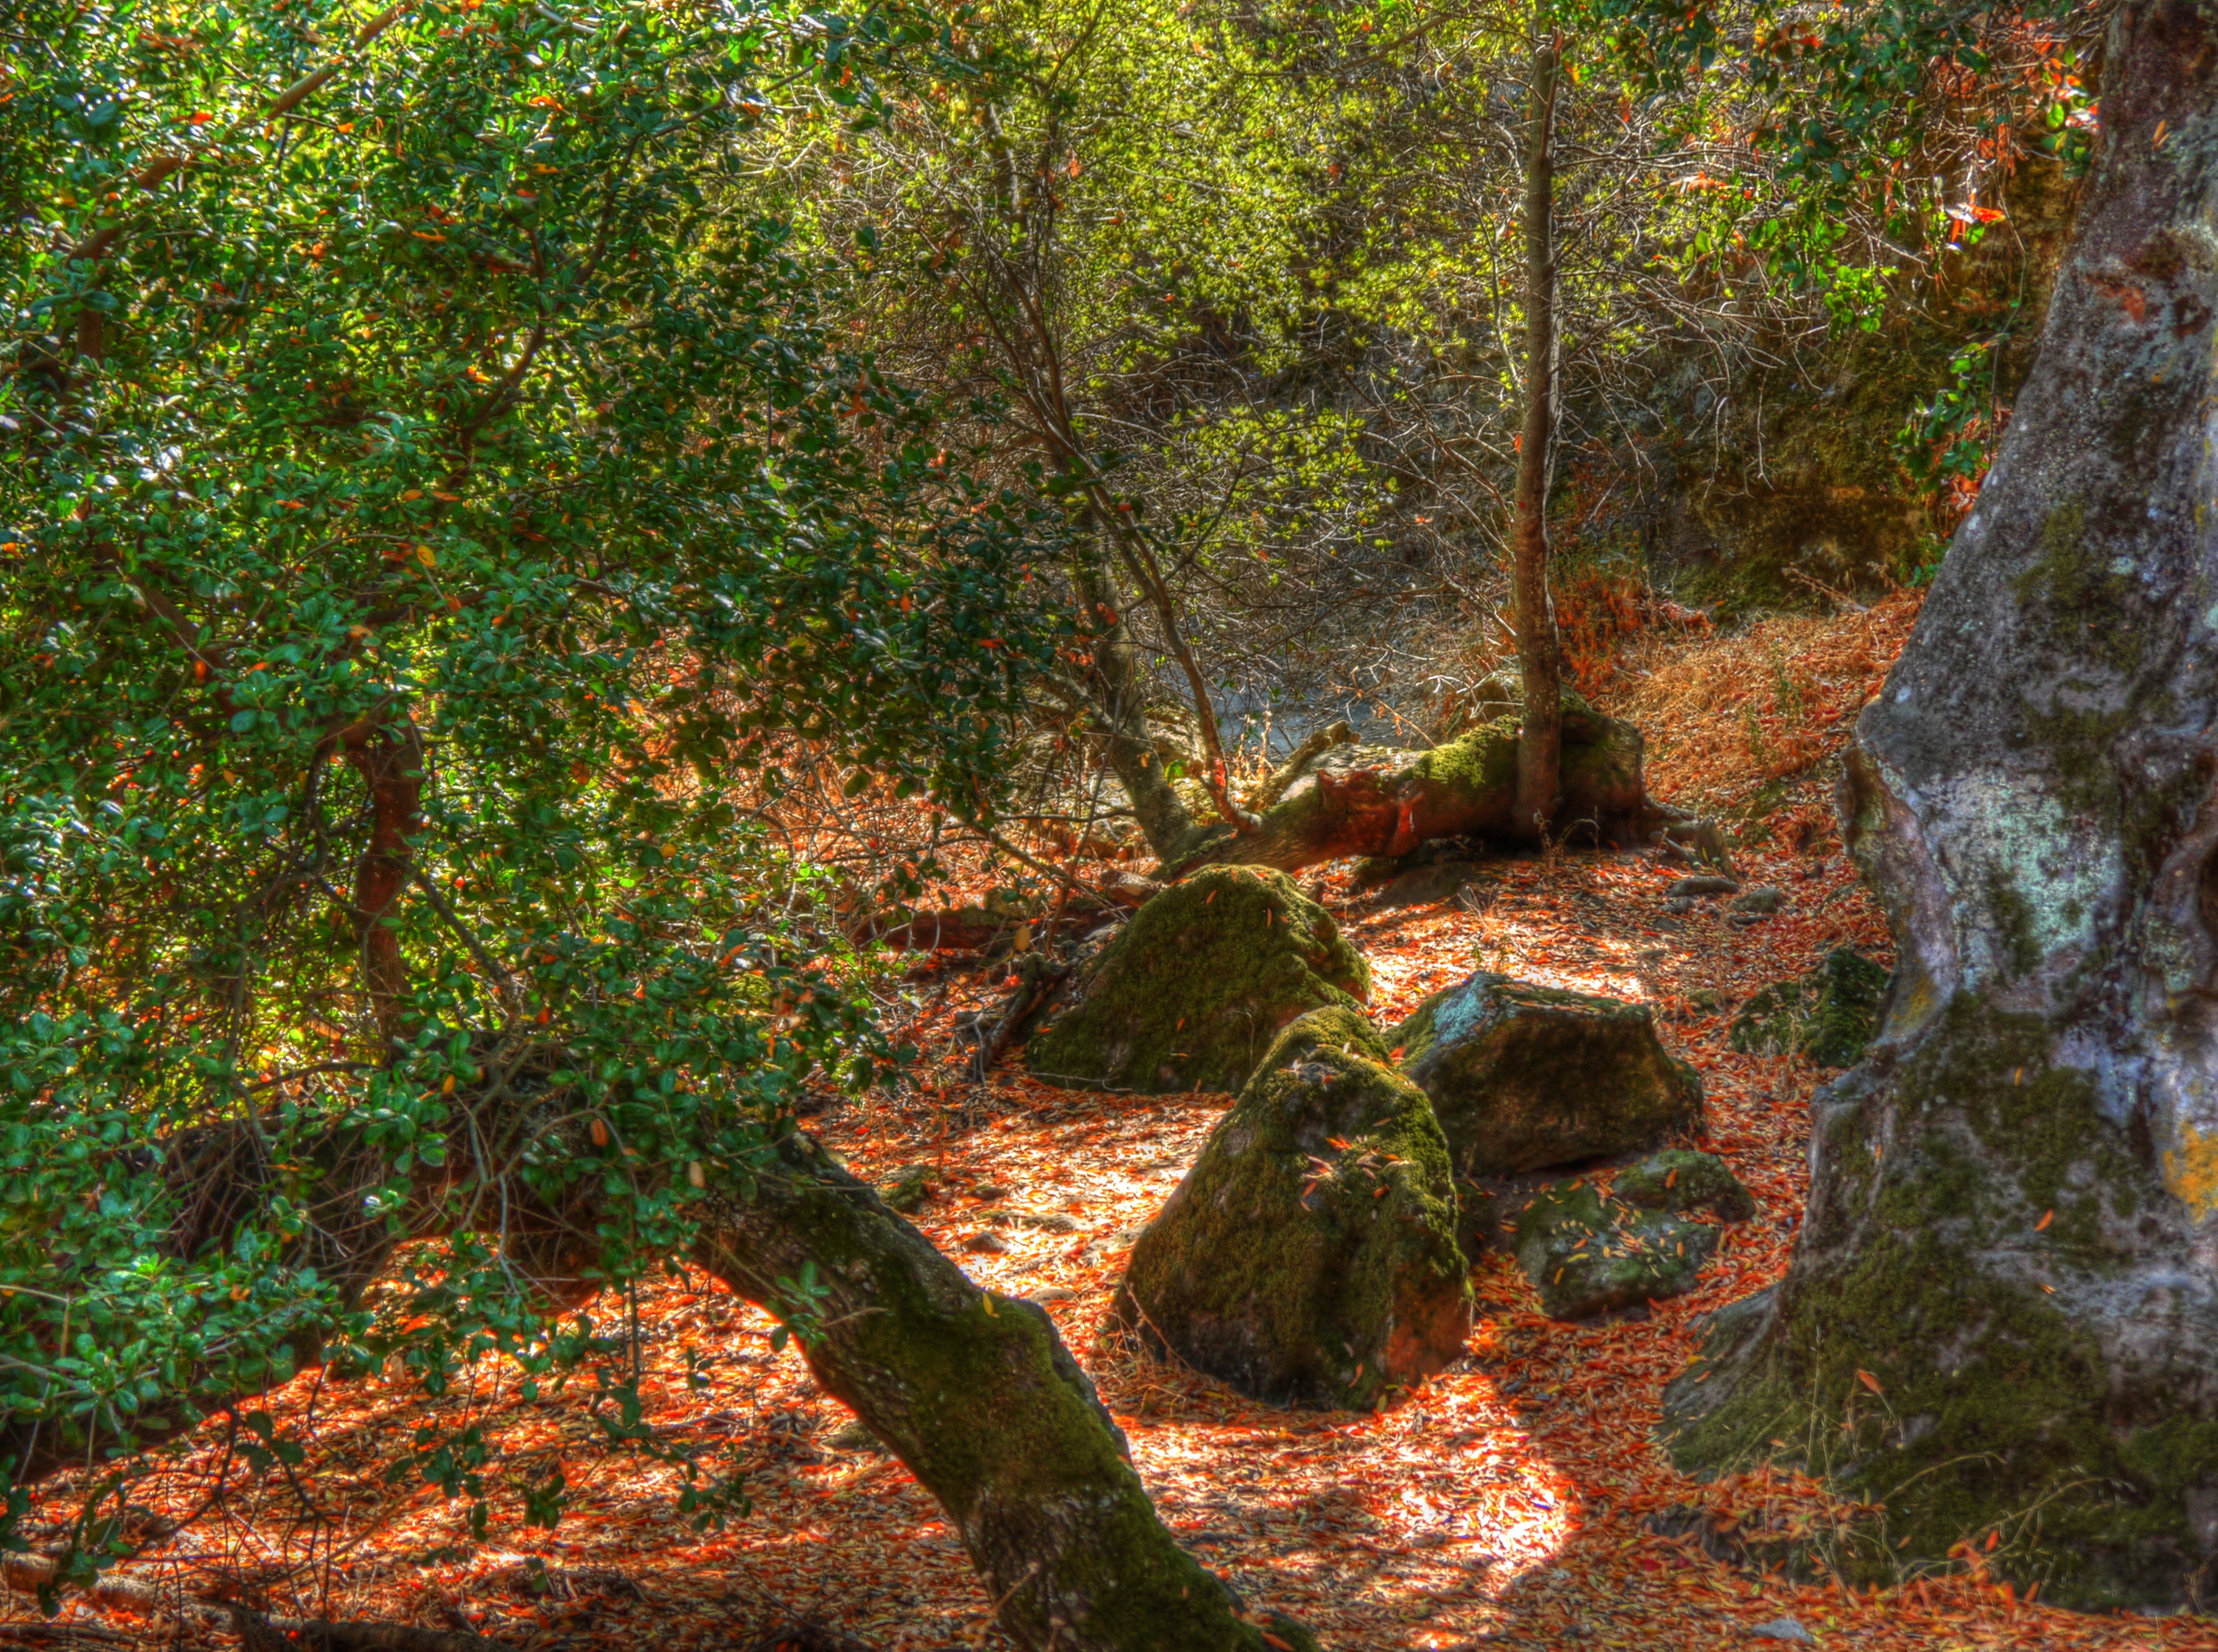 The Path Less Traveled is Carpeted In Red And Gold.